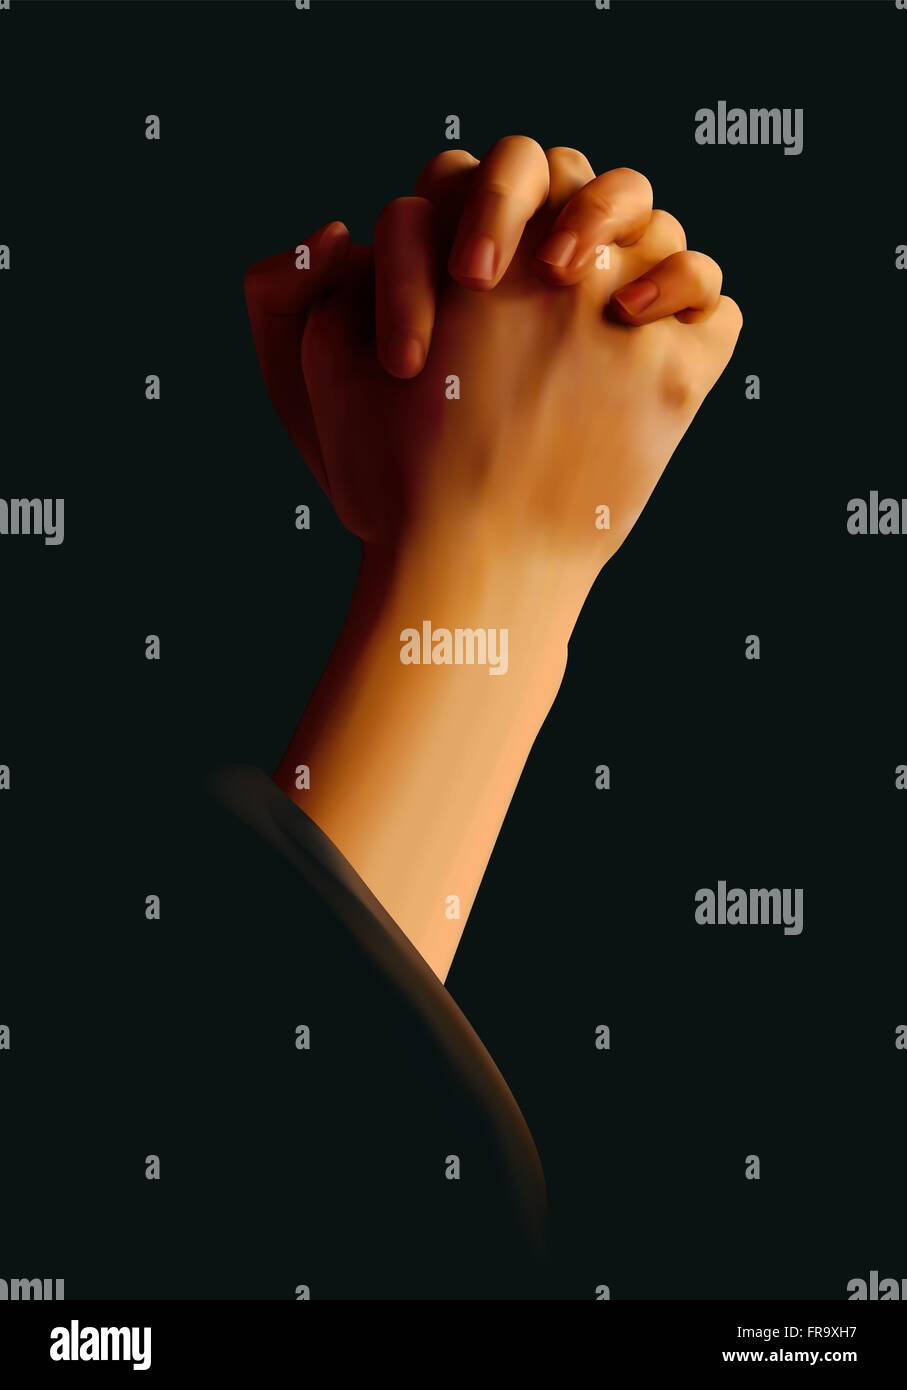 Hands folded in prayer against a black background - Stock Vector